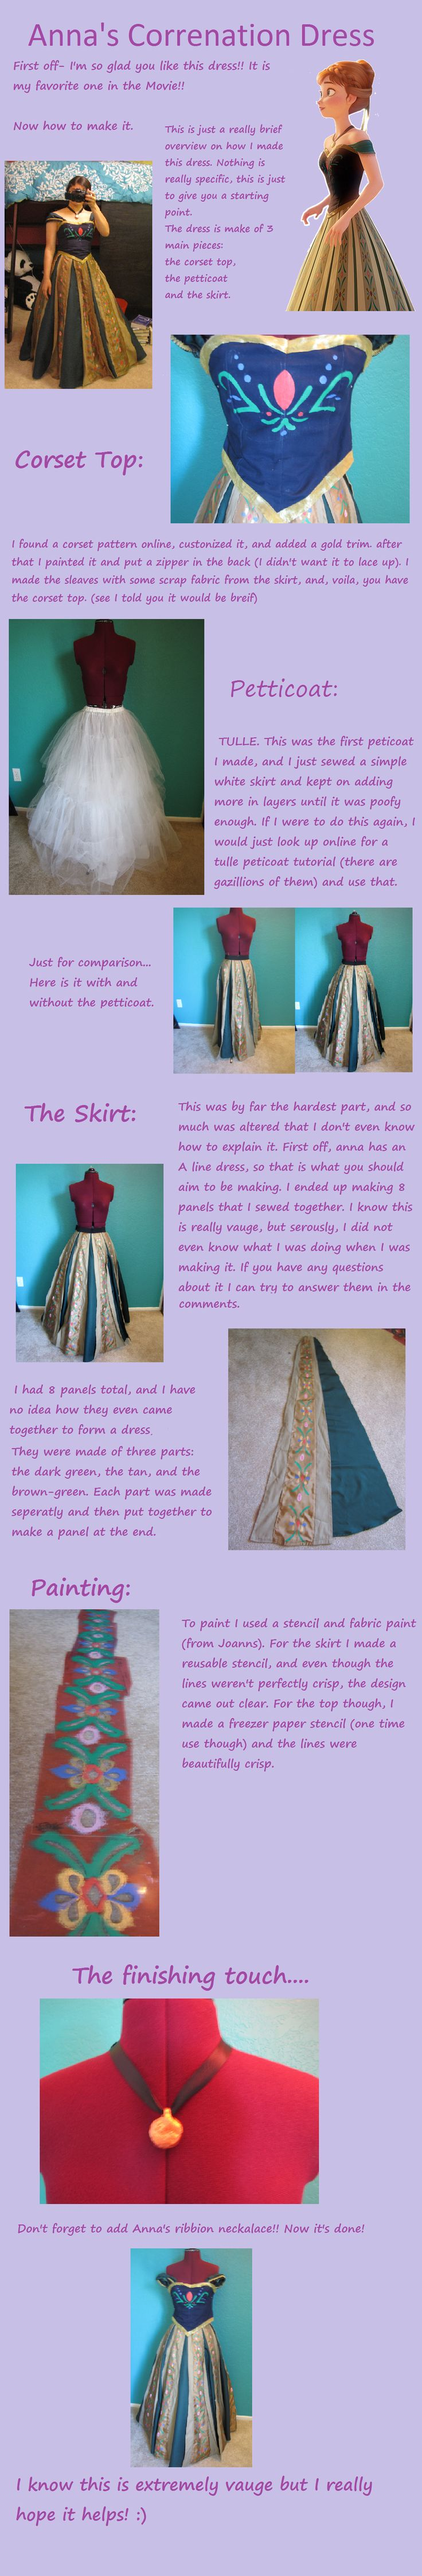 Frozen: Anna Coronation Dress Overview/Tutorial by BooksArtDance.deviantart.com on @deviantART